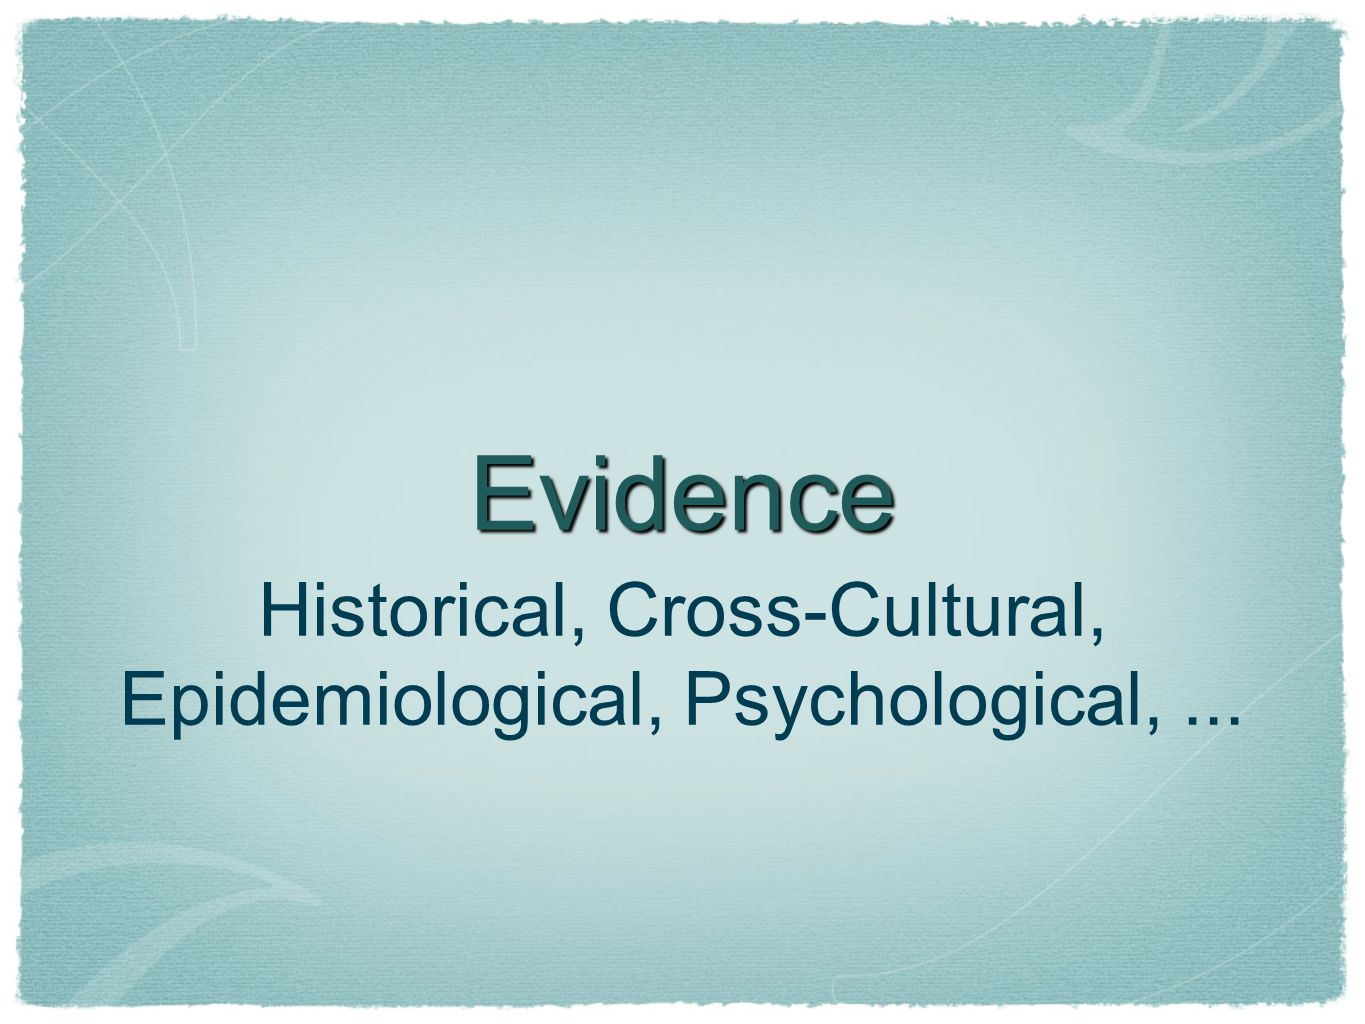 Evidence Historical, Cross-Cultural, Epidemiological, Psychological,...